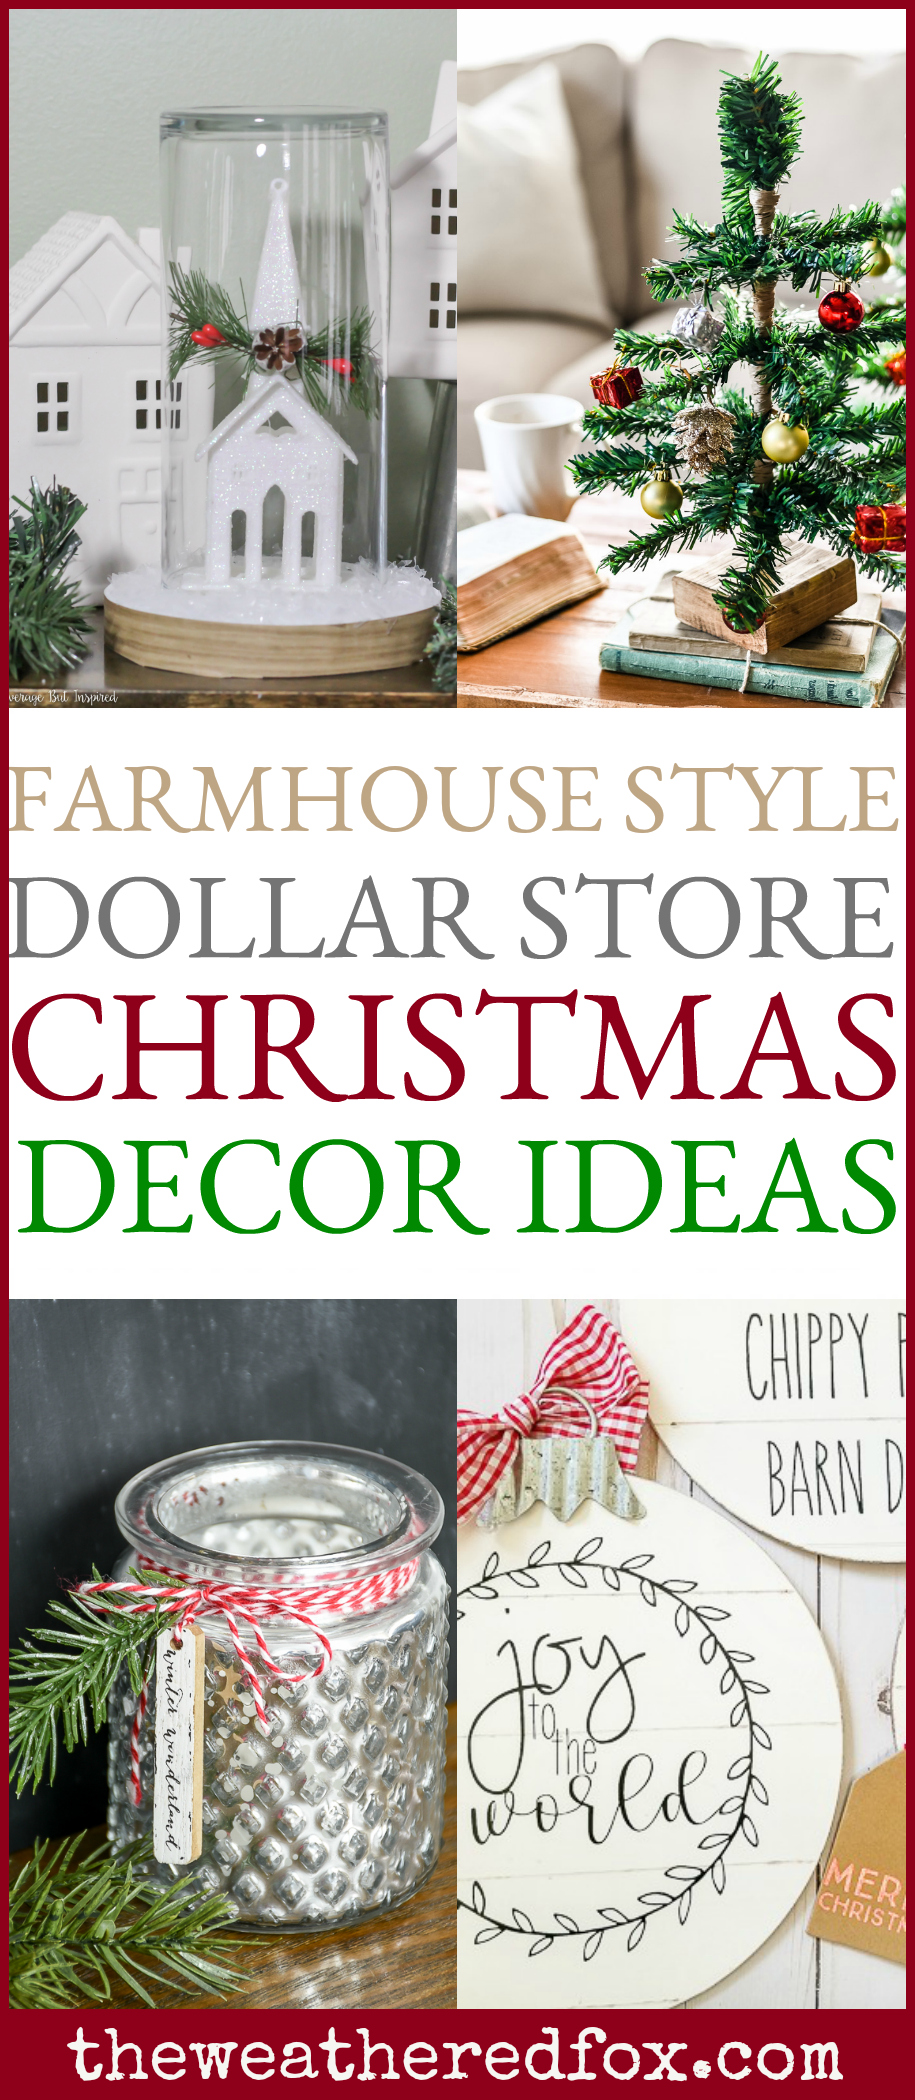 Best Dollar Store Christmas Decor Ideas The Weathered Fox This Month